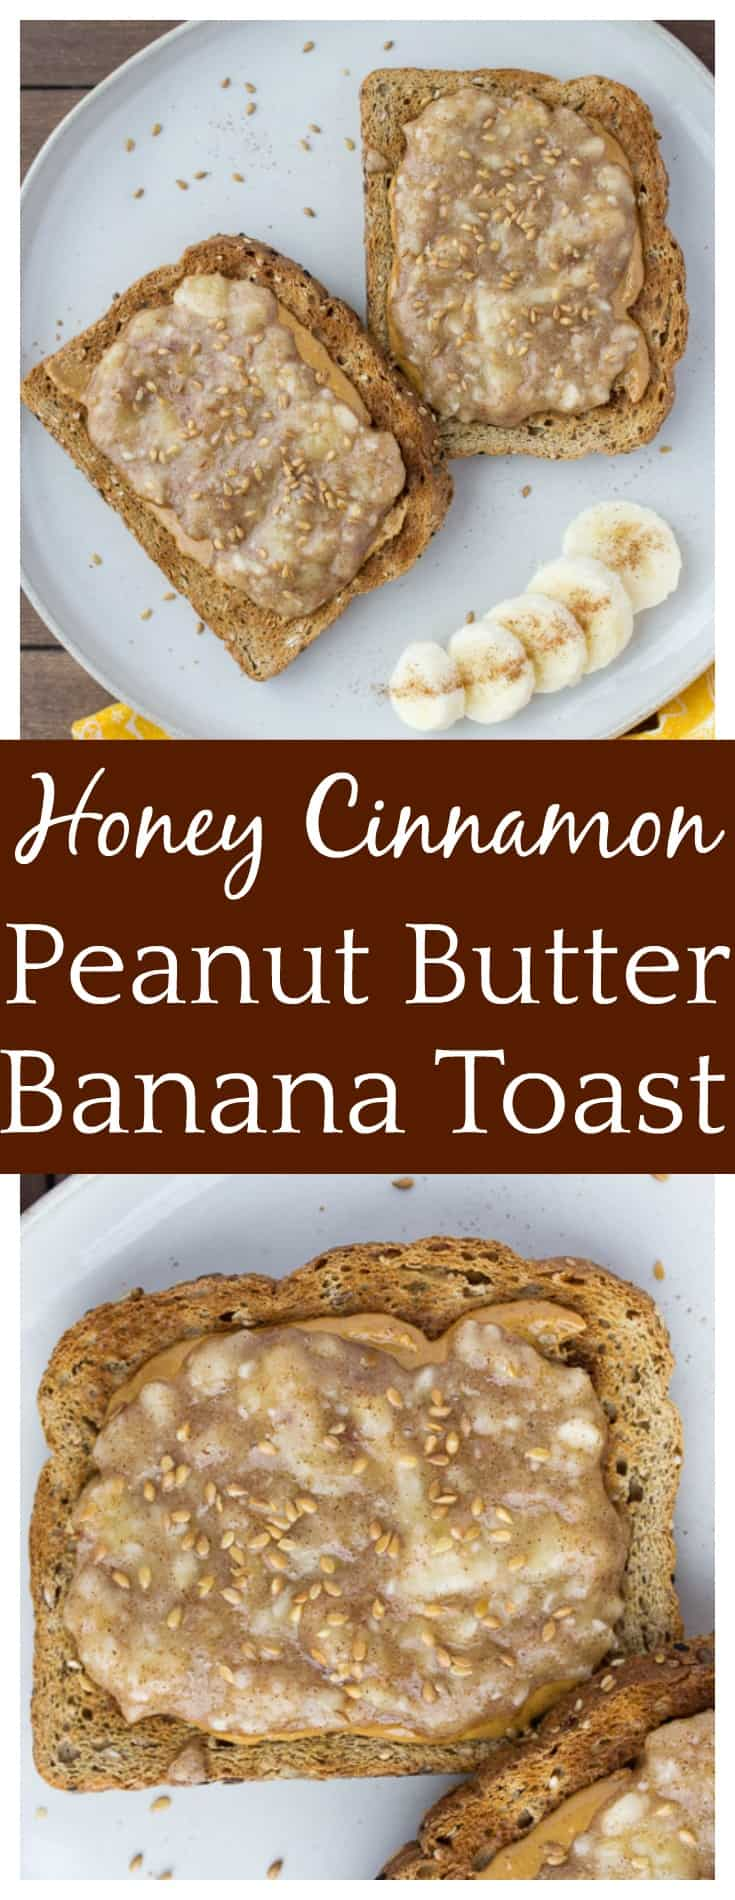 Start your morning off right with this easy recipe for Honey Cinnamon Peanut Butter Banana Toast! It's super delicious breakfast recipe that will keep you full for hours! | #bananabread #bananatoast #breakfast #easyrecipe #dlbrecipes